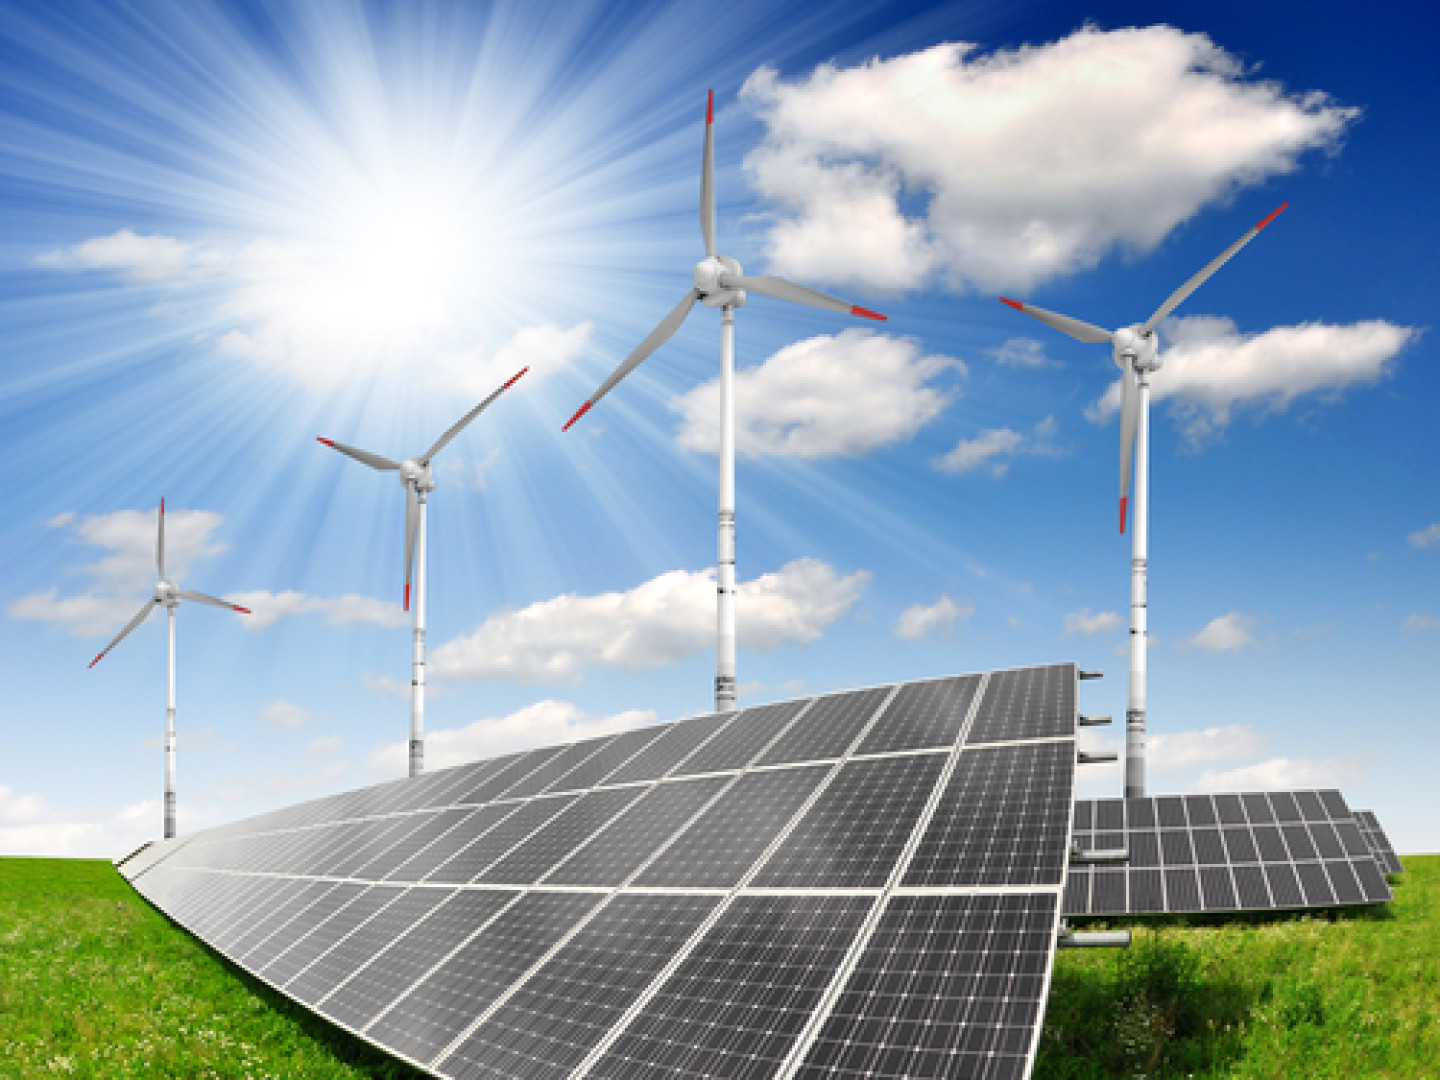 Check out the benefits of solar energy systems